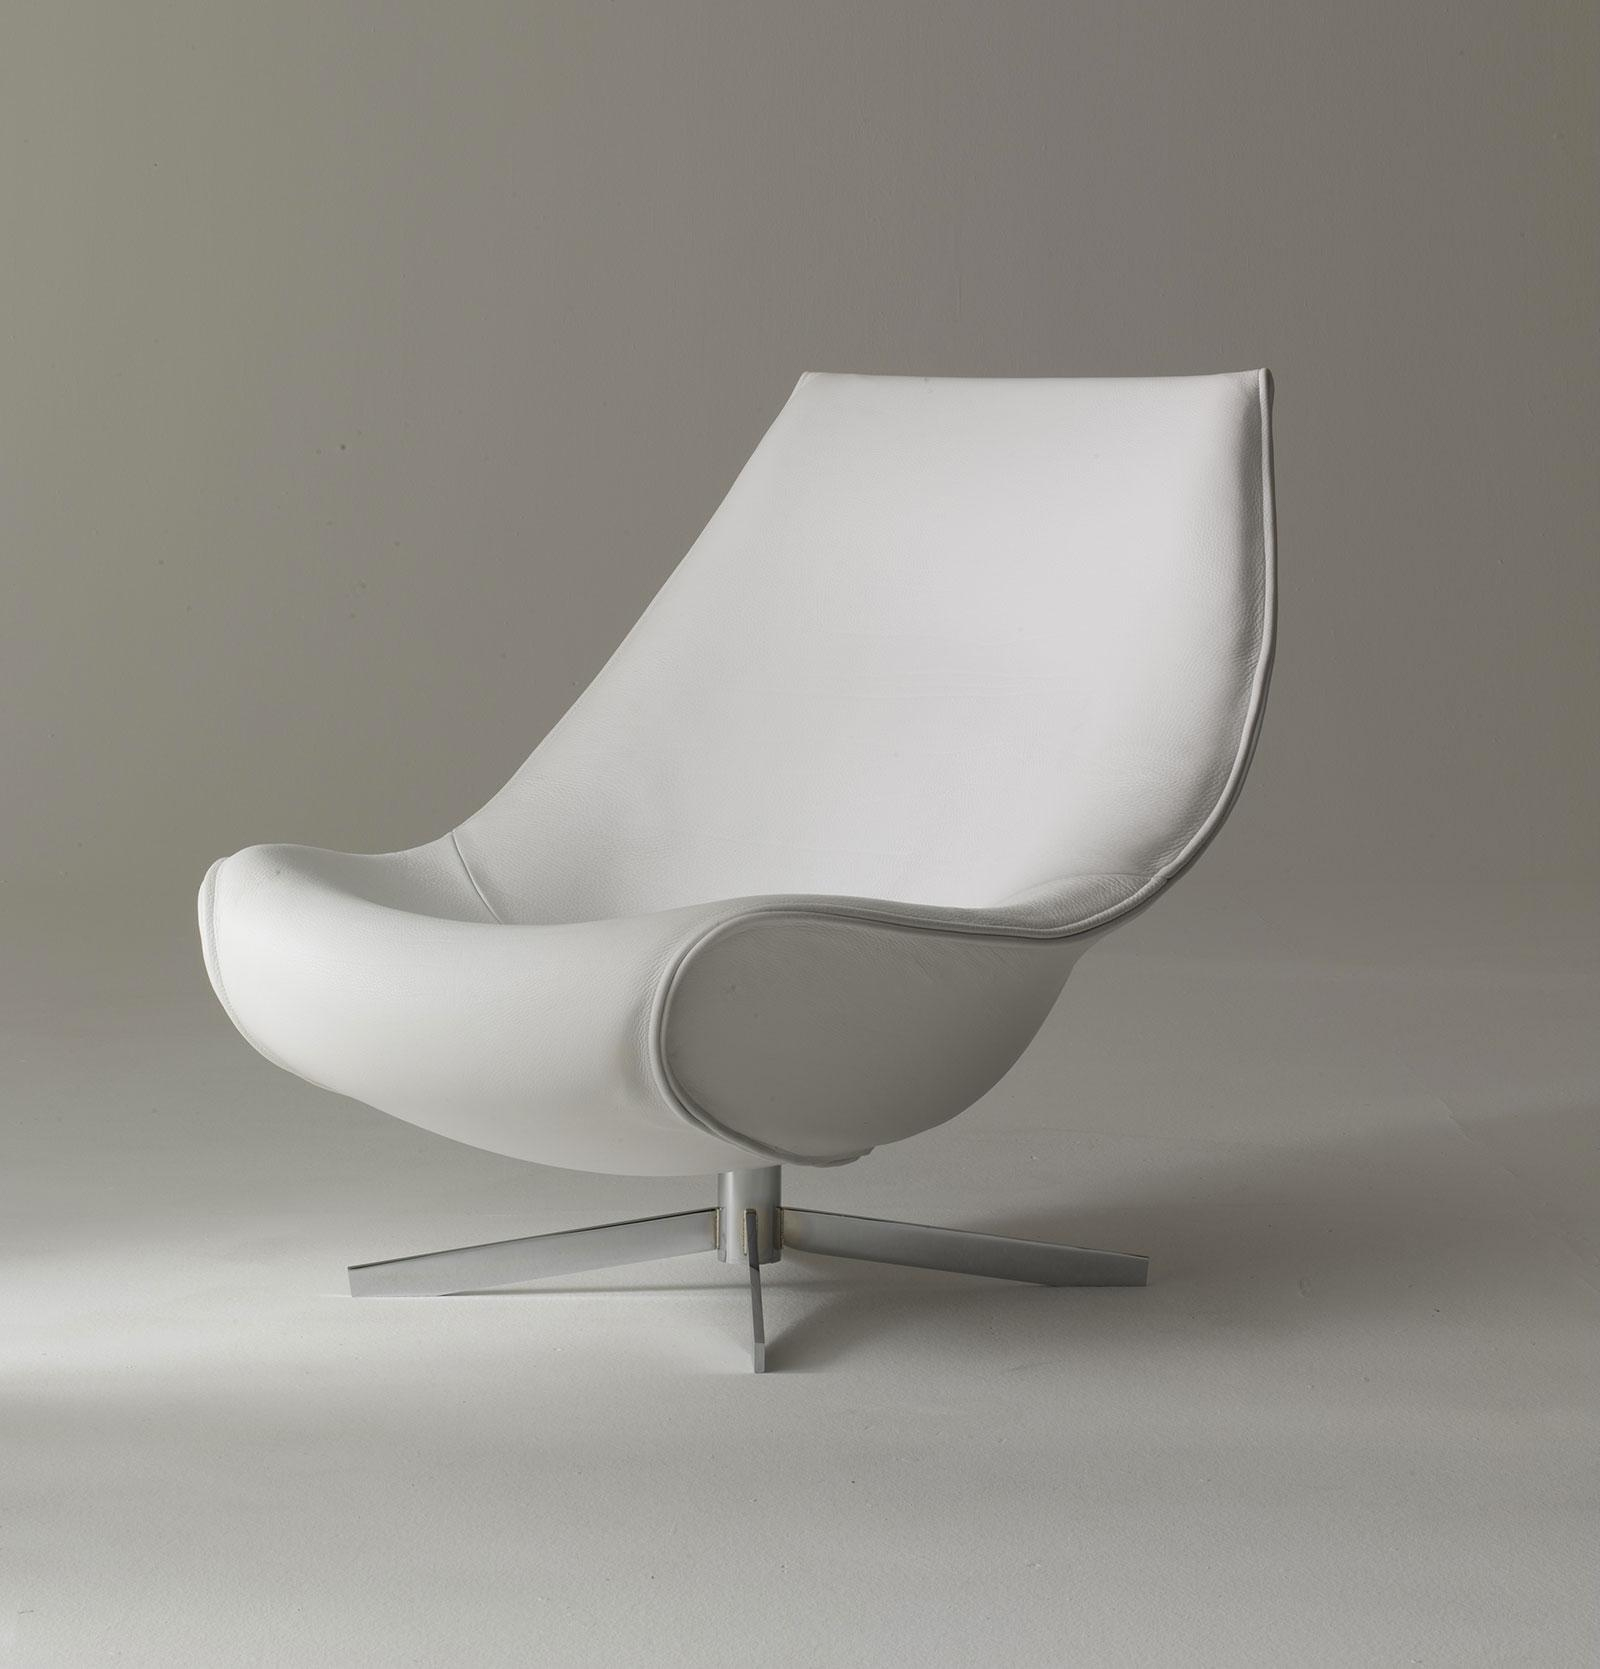 Oyster Relax Armchair Completely Covered In Saddle Leather tout Fauteuil Relax Design Italien